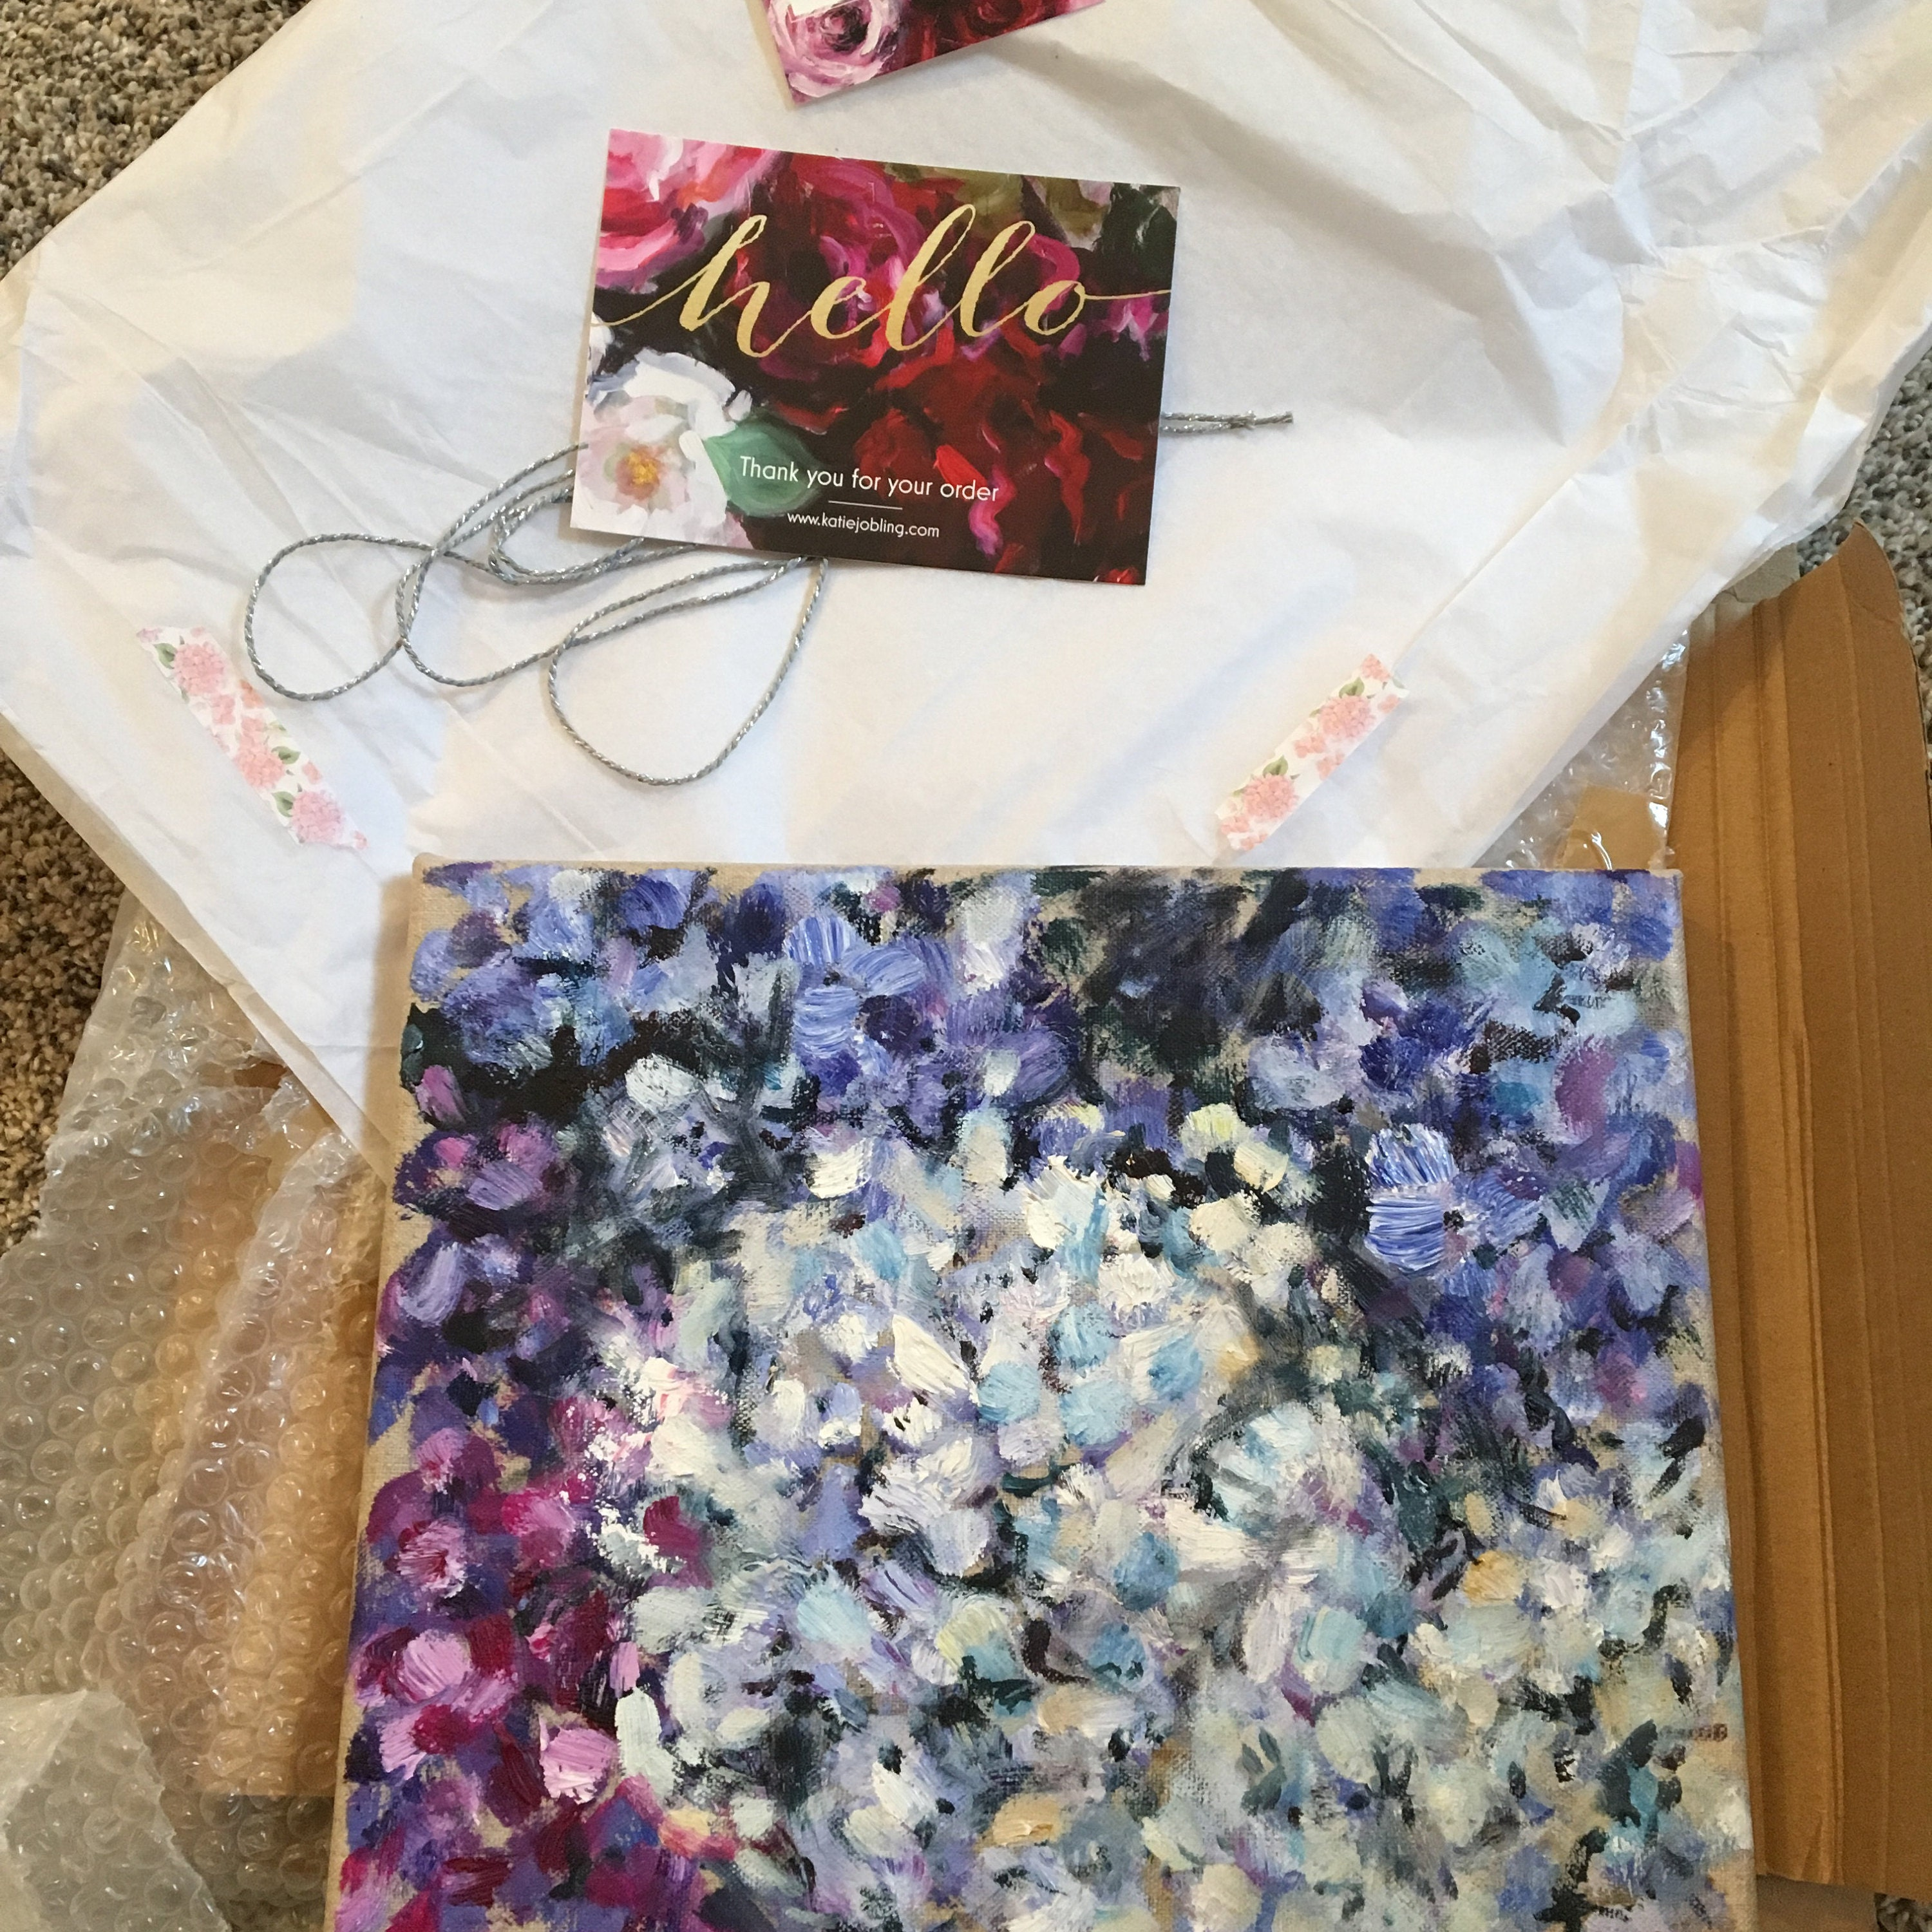 Charlotte Wisner added a photo of their purchase